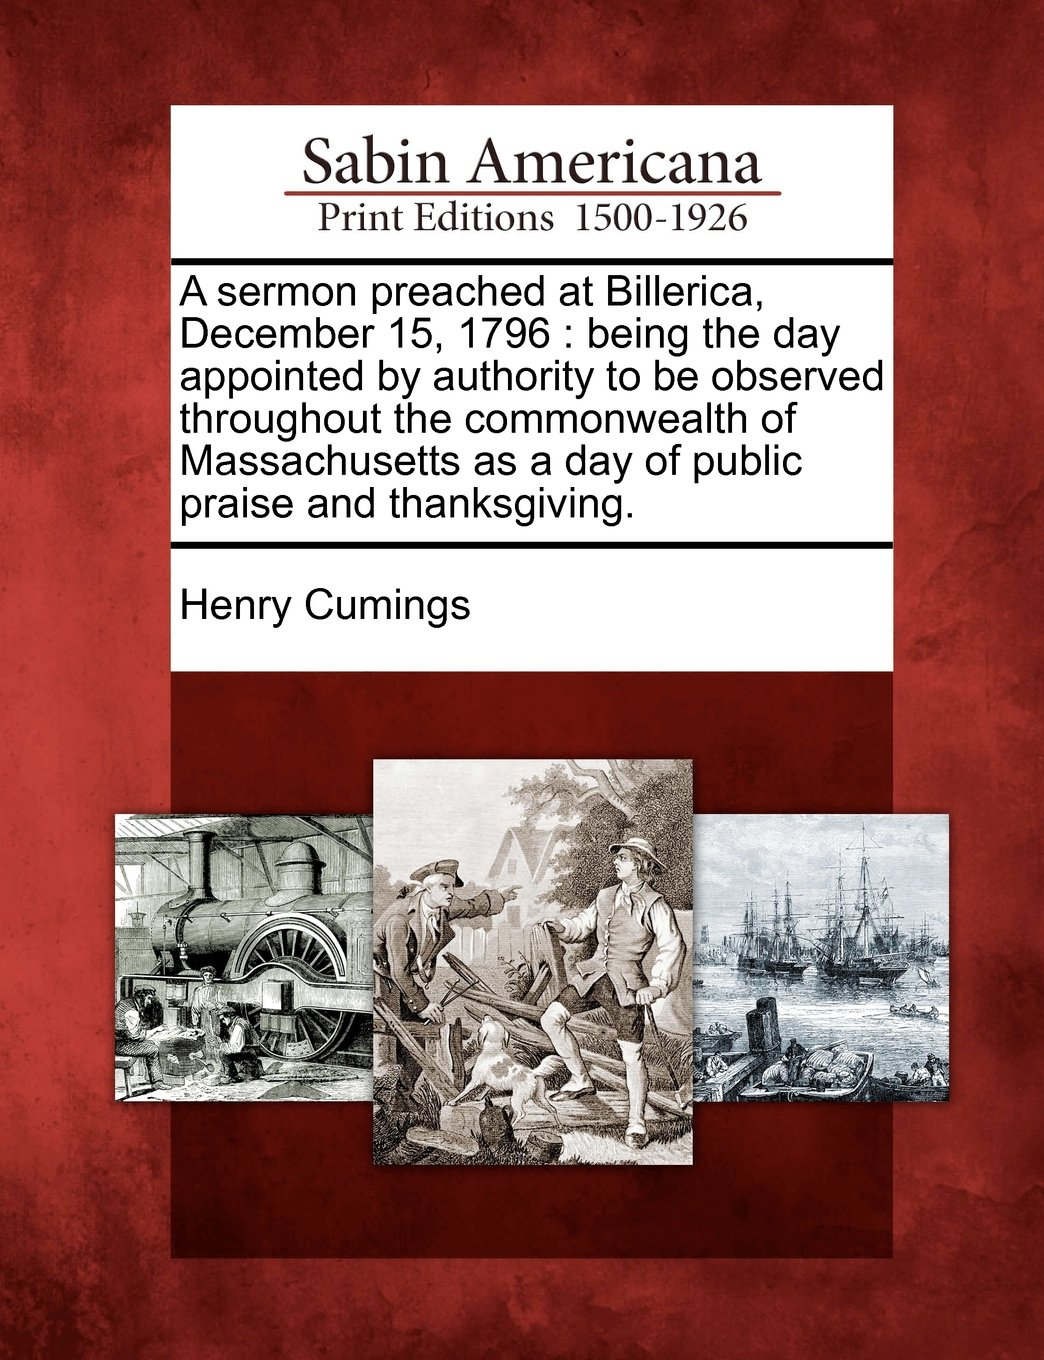 A sermon preached at Billerica, December 15, 1796: being the day appointed by authority to be observed throughout the commonwealth of Massachusetts as a day of public praise and thanksgiving. ebook